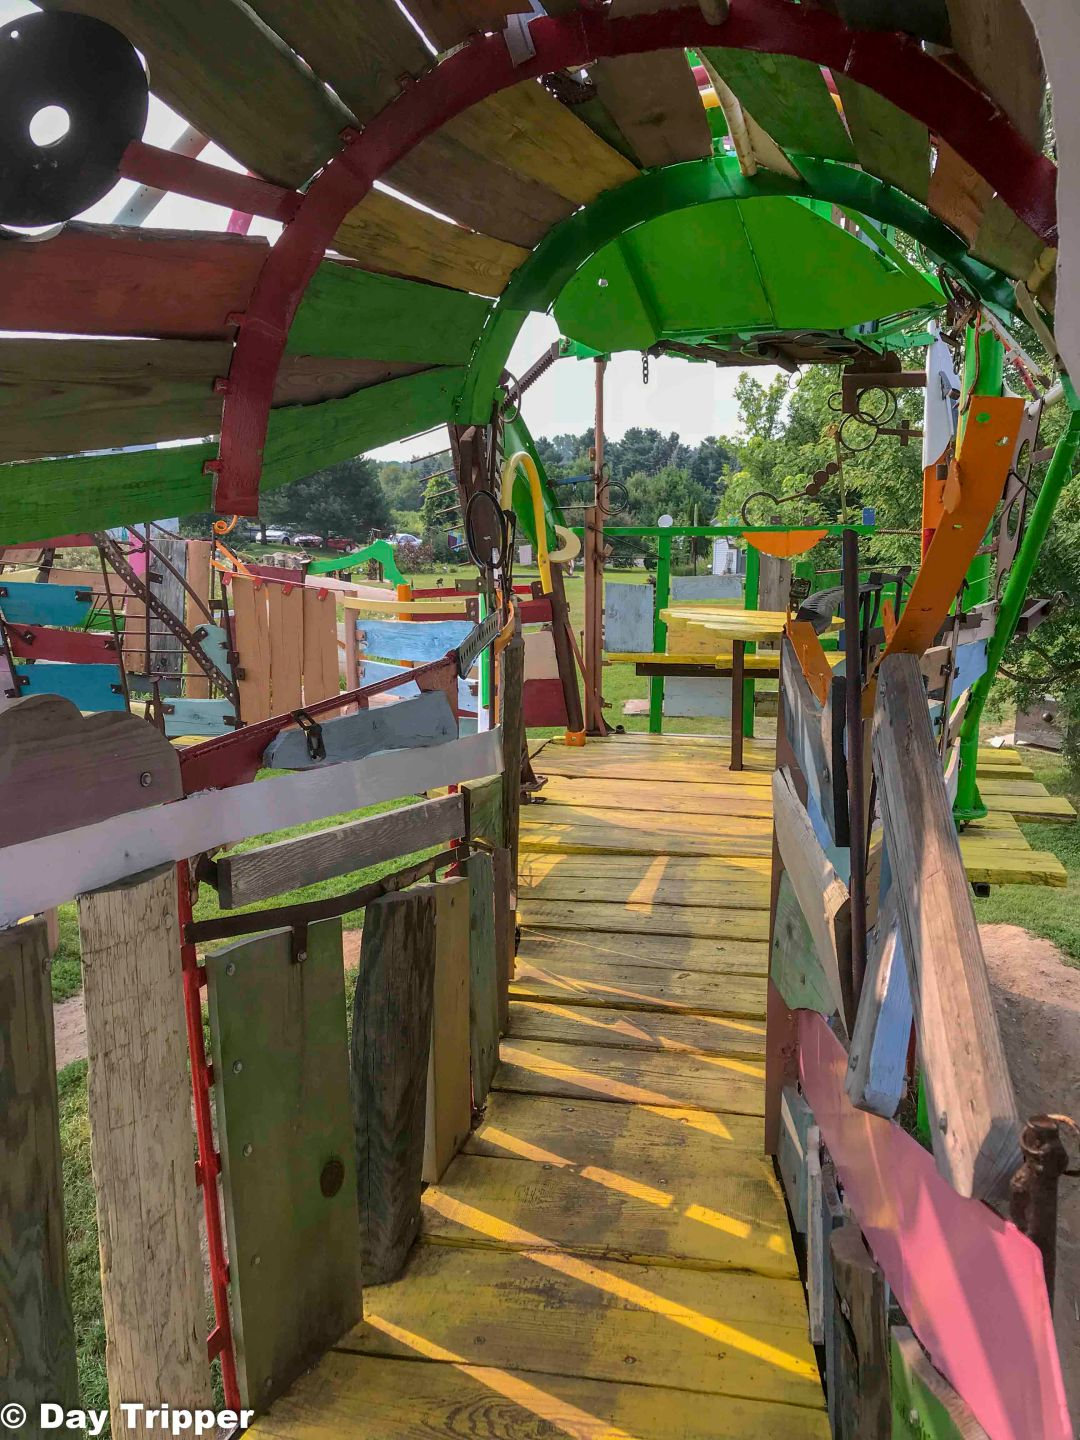 Inside the play structure